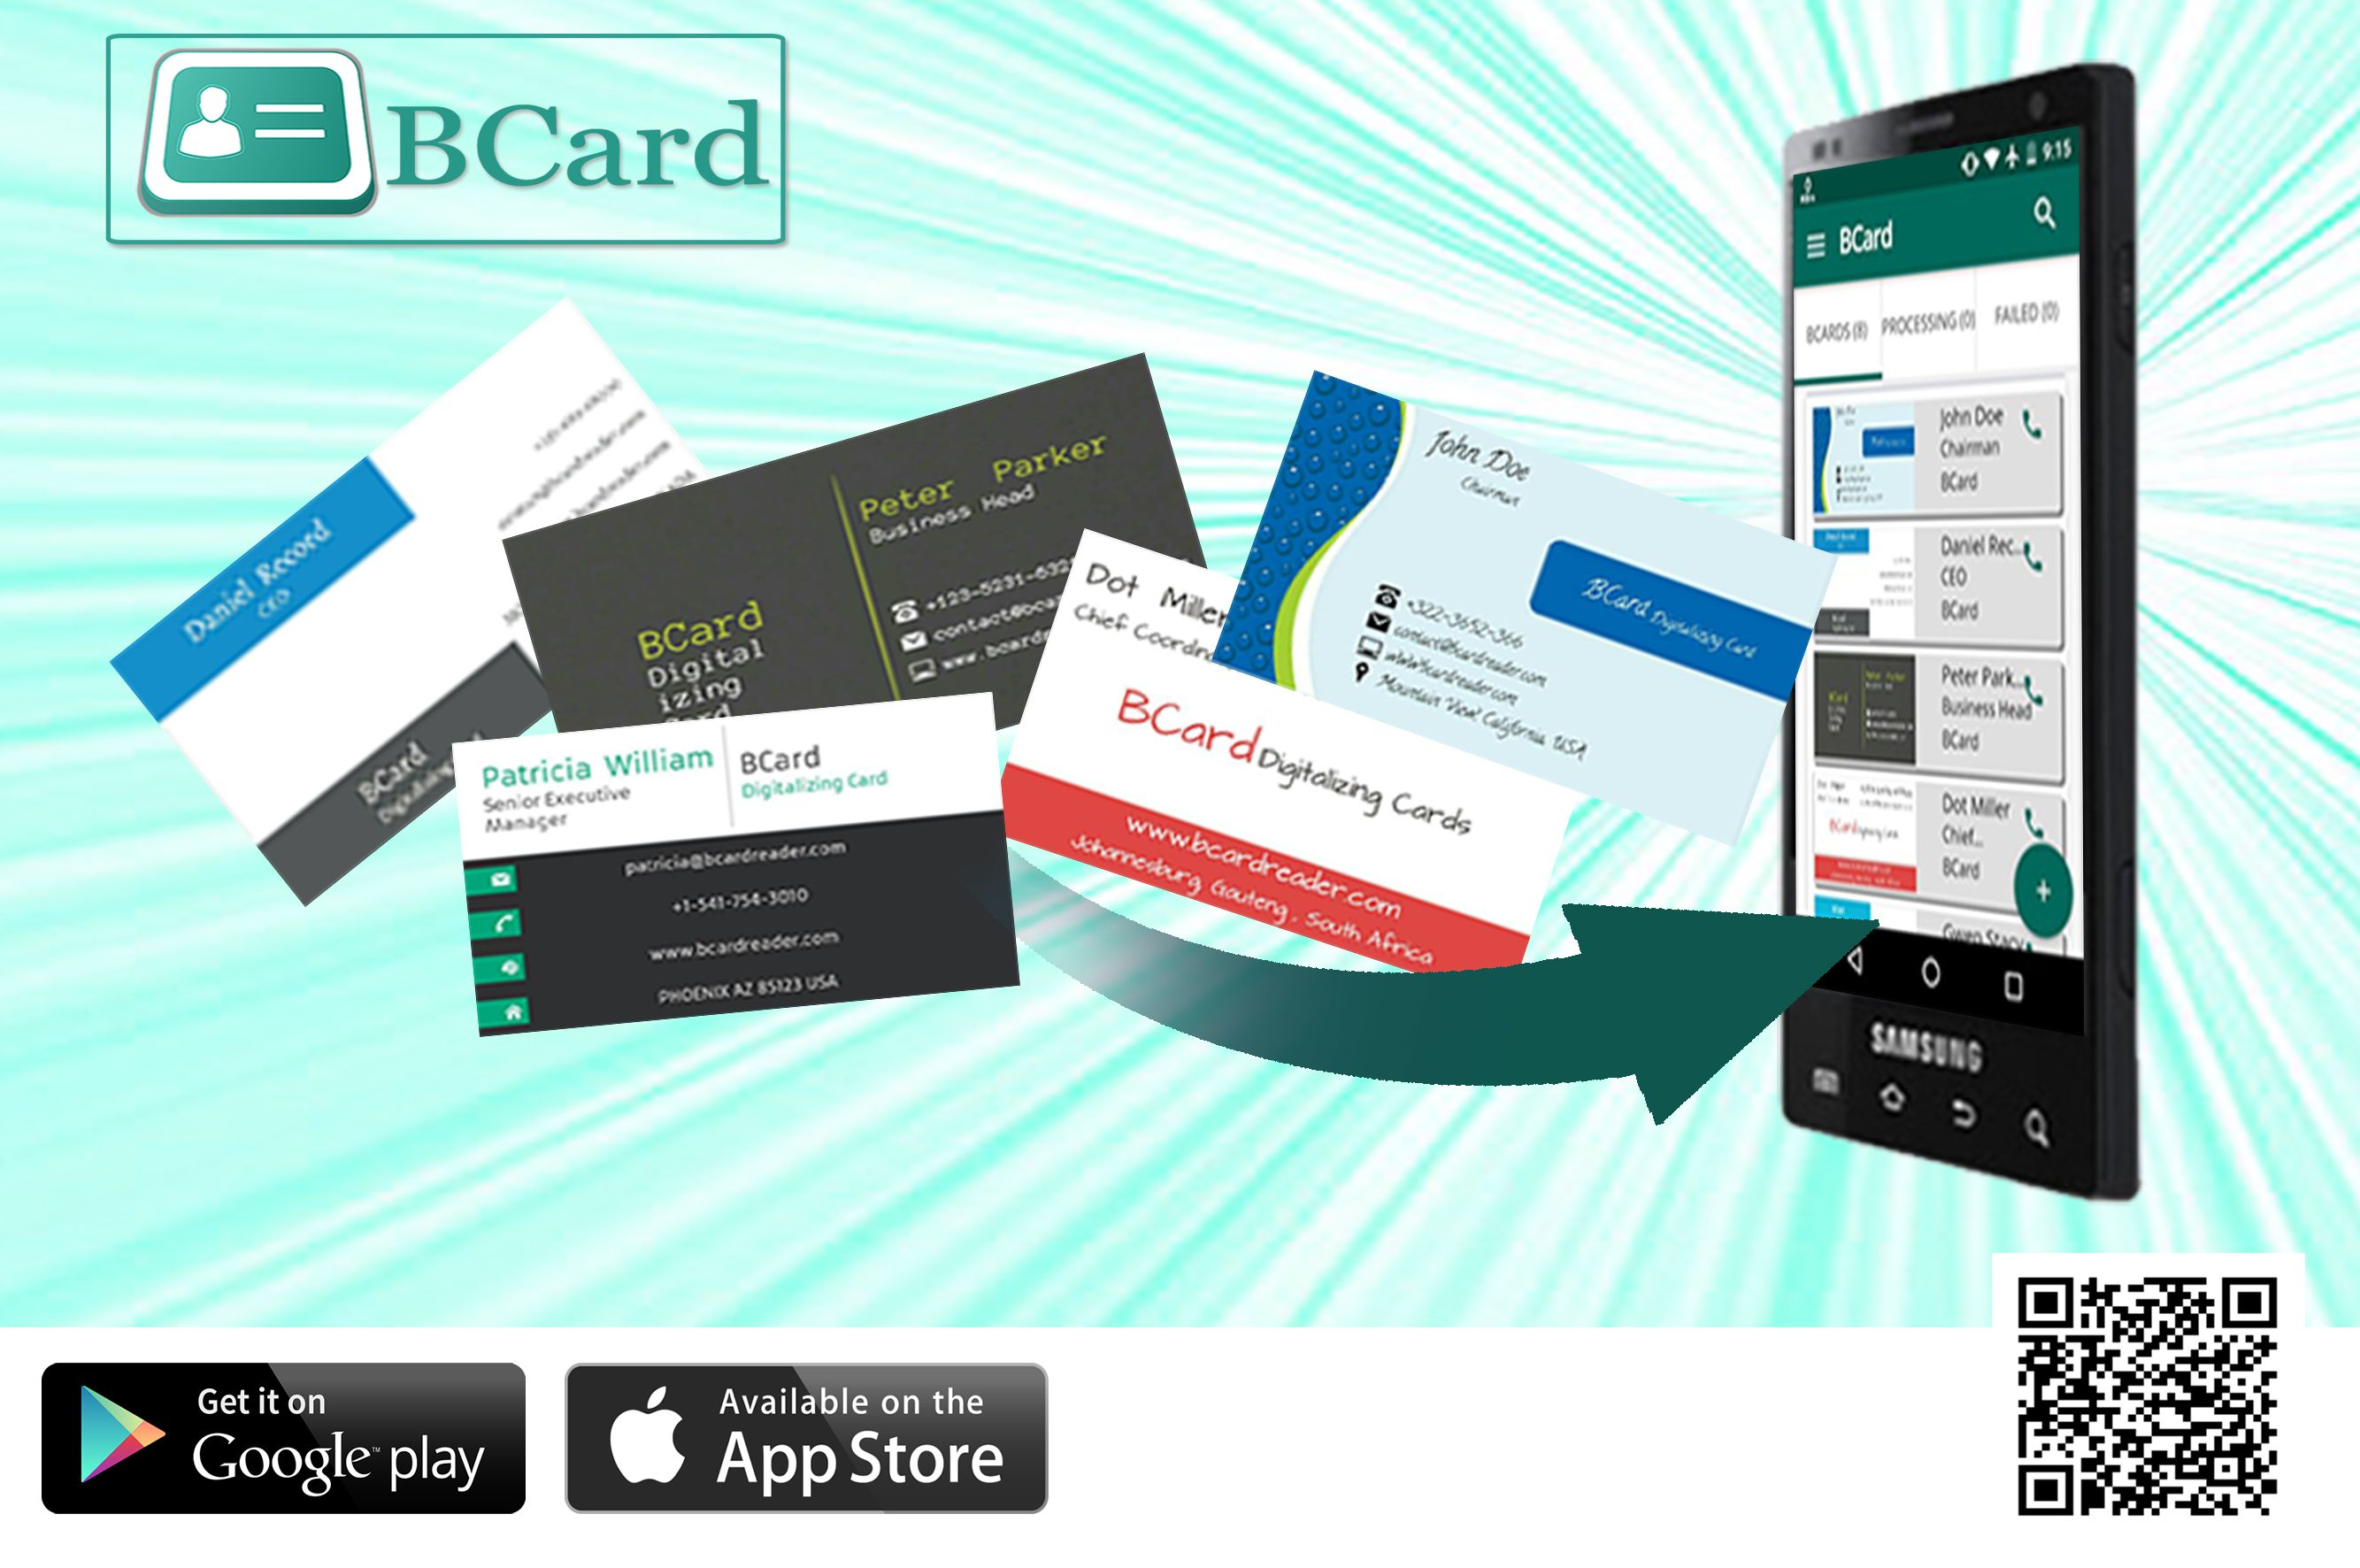 Save paper save trees manage your all paper business card with bcard save paper save trees manage your all paper business card with bcard reader tpbcardreader reheart Image collections